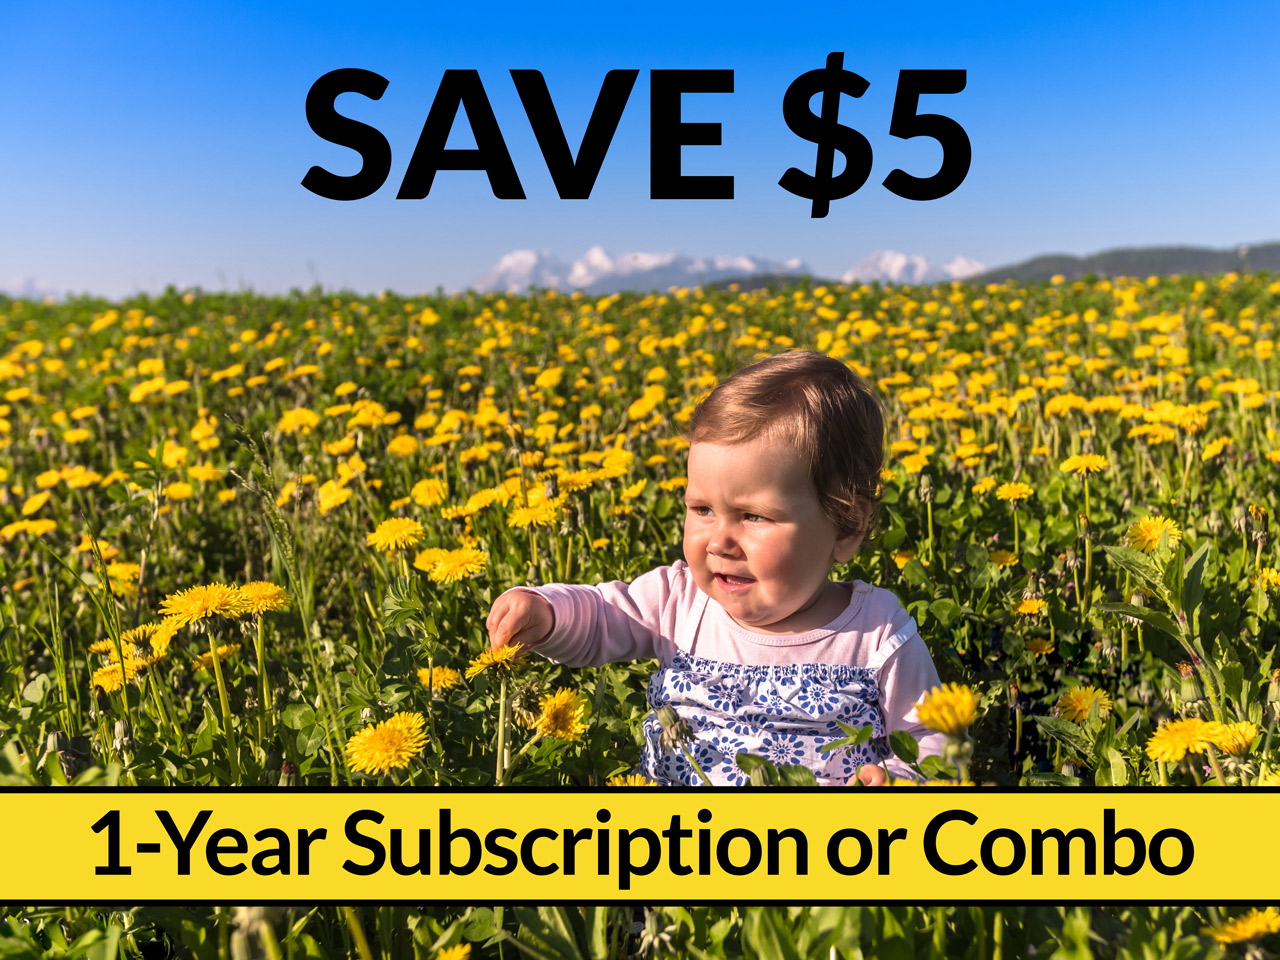 Save $5 on a 1-year Midwifery Today subscription. Or save $5 on a 1-year print subscription and Website Membership combo. Use code 4019mtoc when you check out.